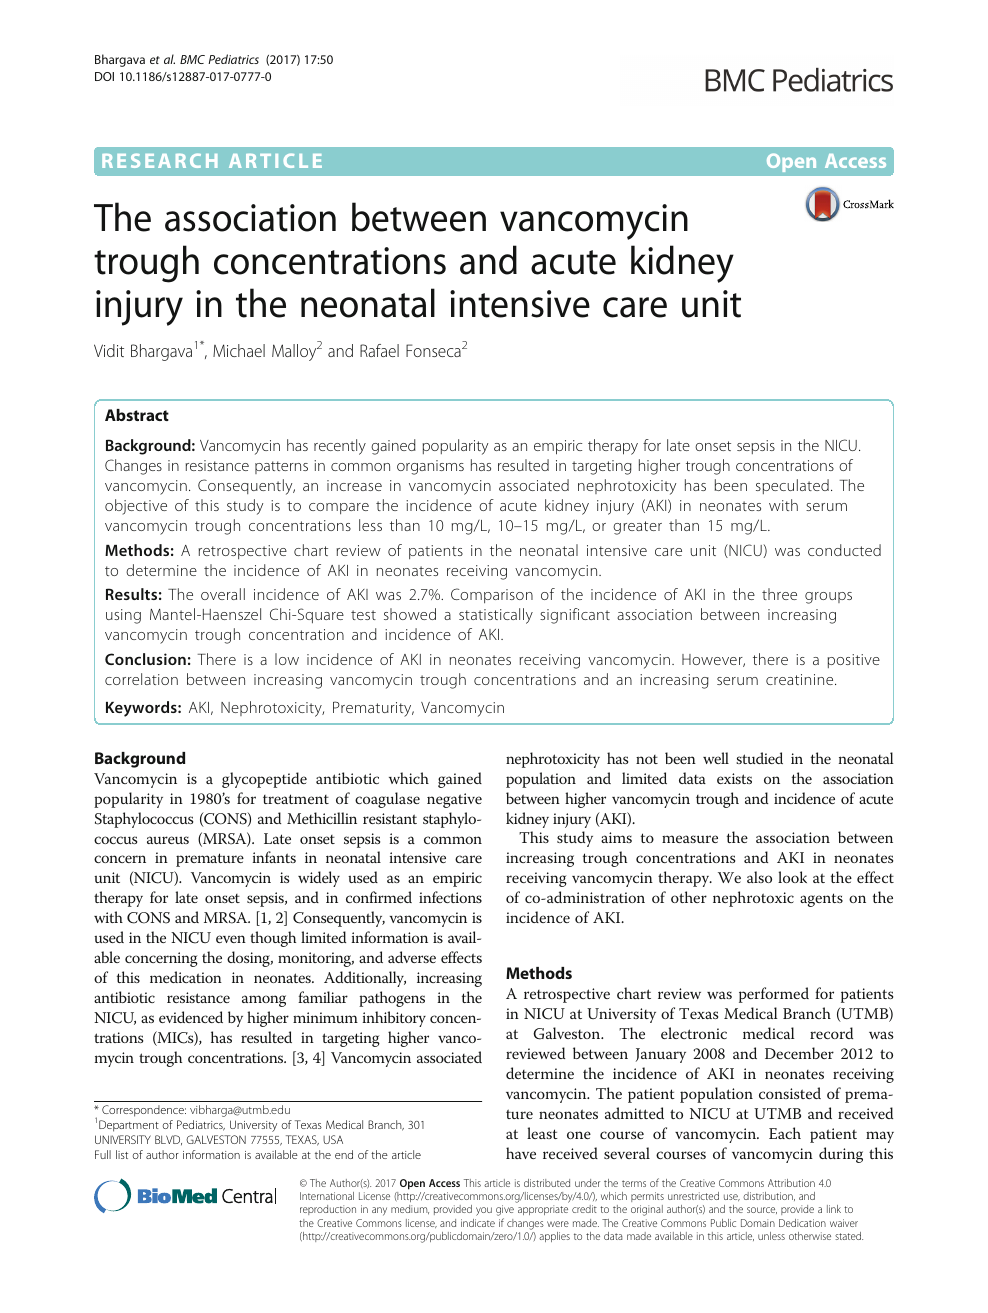 The association between vancomycin trough concentrations and acute